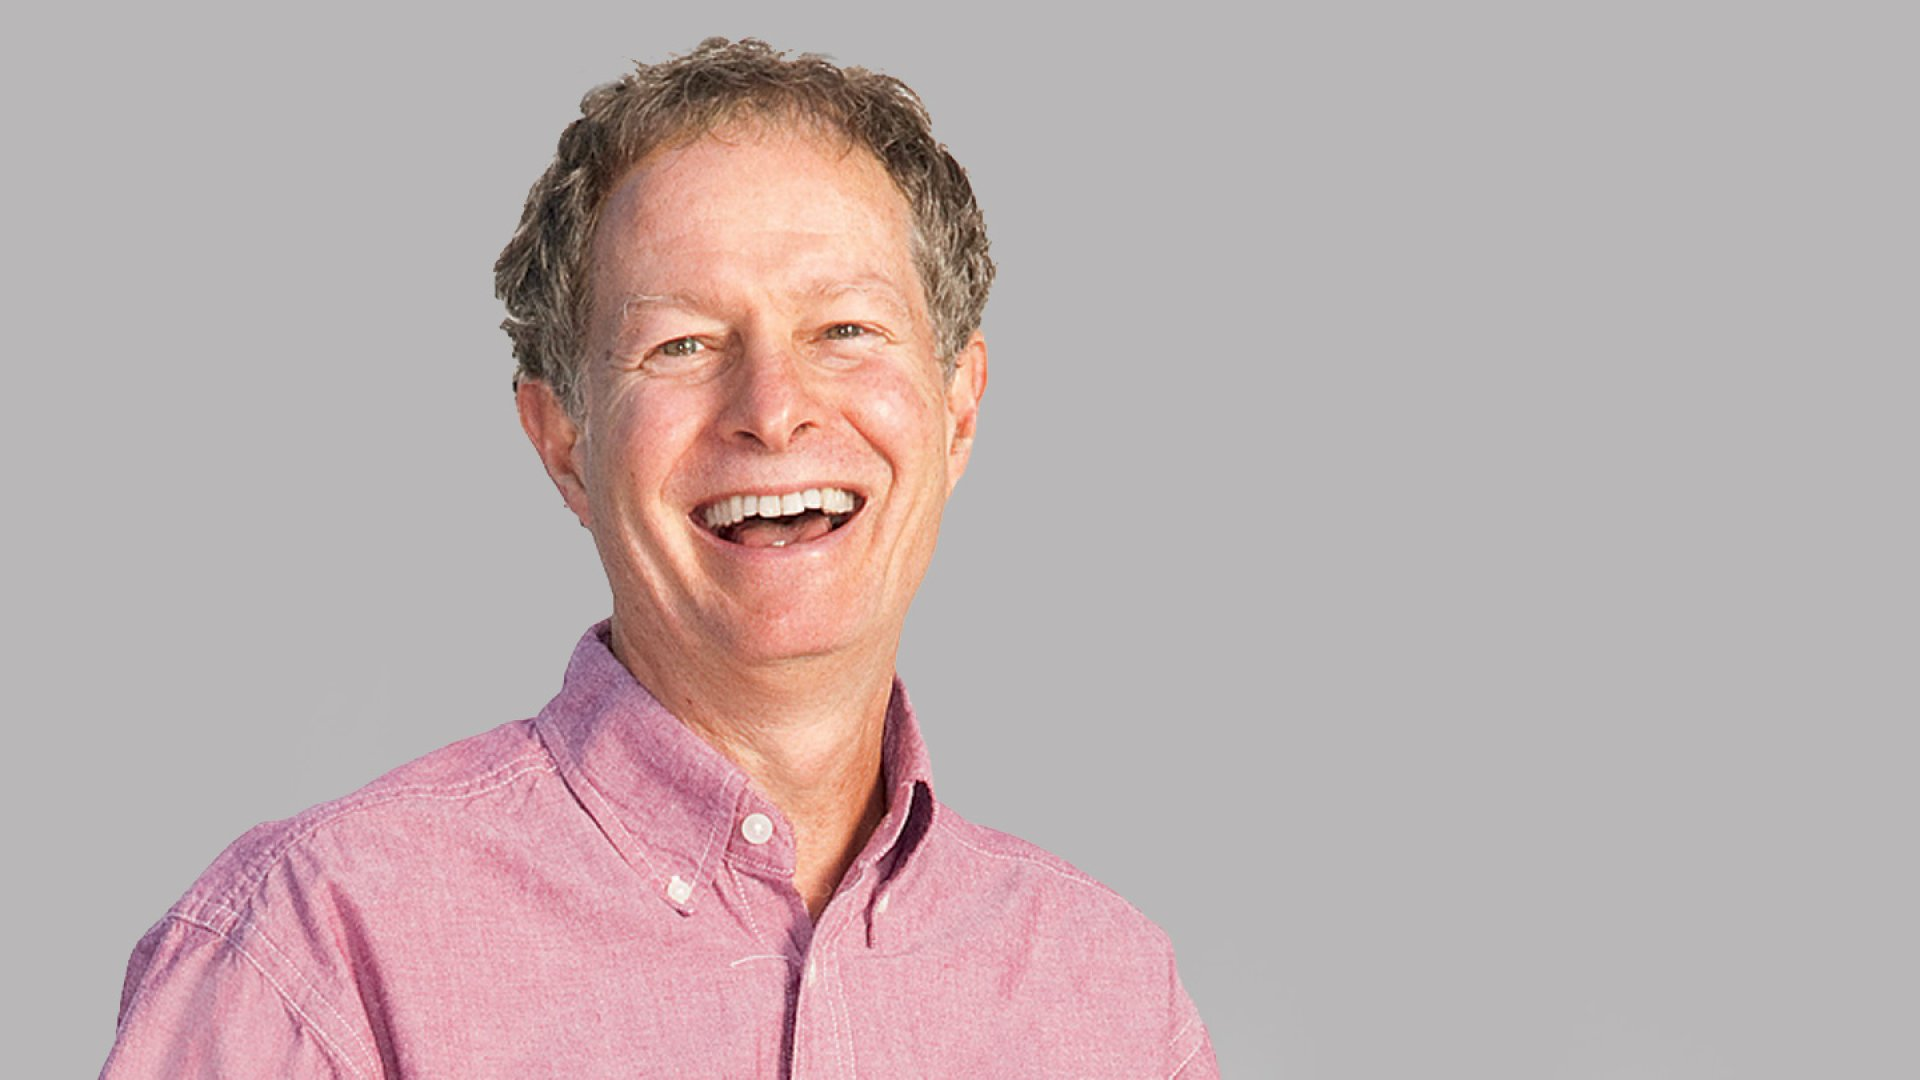 John Mackey: Learn to See the Big Picture